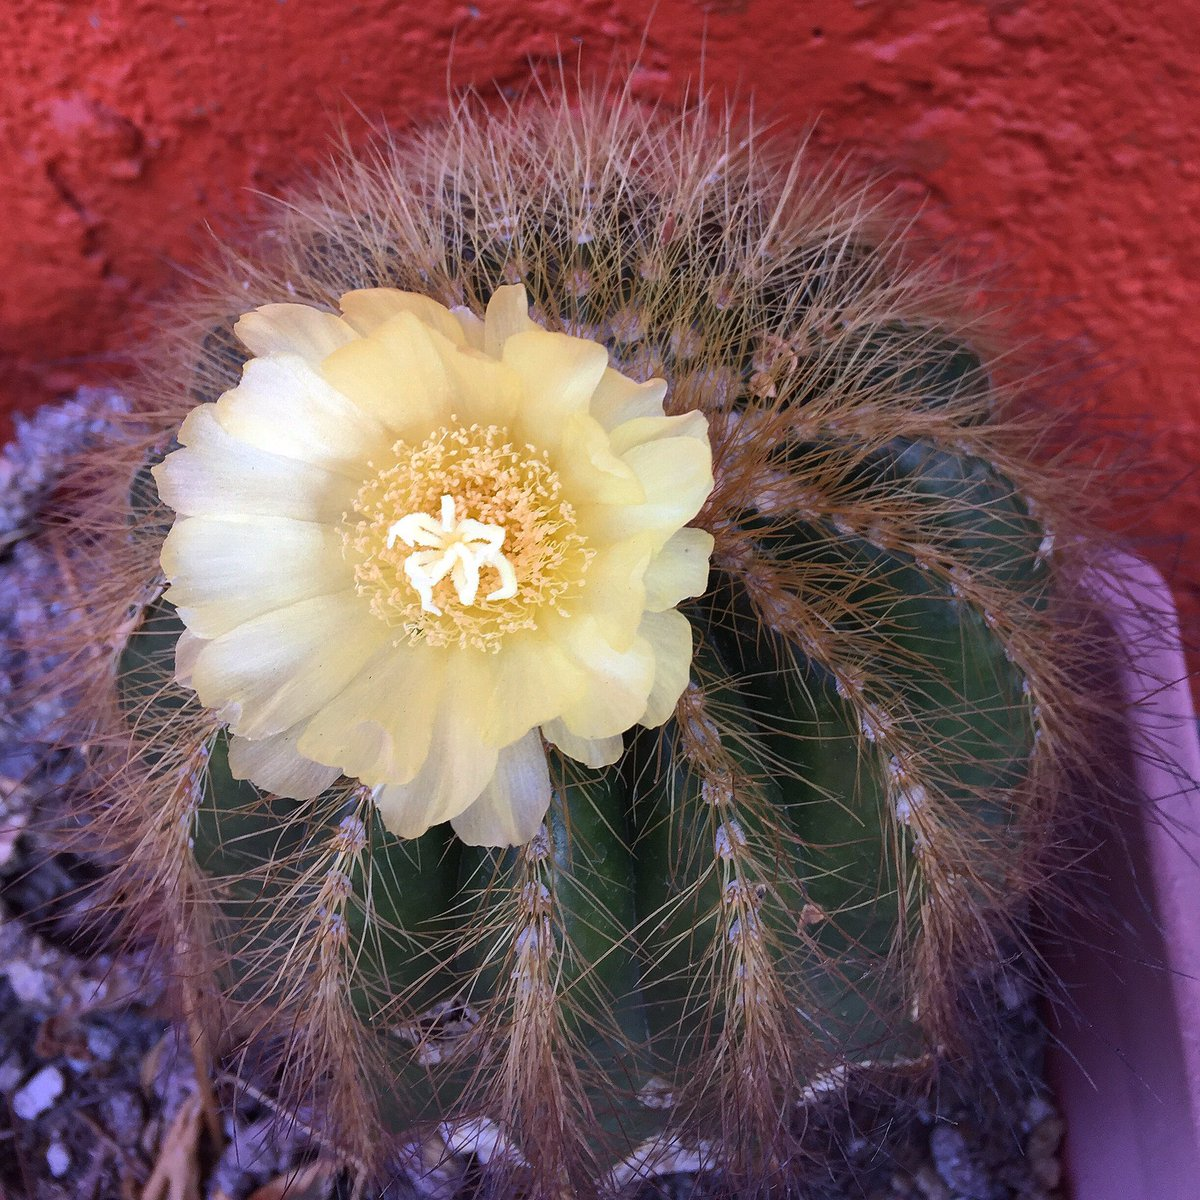 My chunky little  has a happy little flower  #cactus #cactuslover #flowers #sopretty #happyfriday #tgif #happiness #joy #happyday <br>http://pic.twitter.com/w44zZGHECi